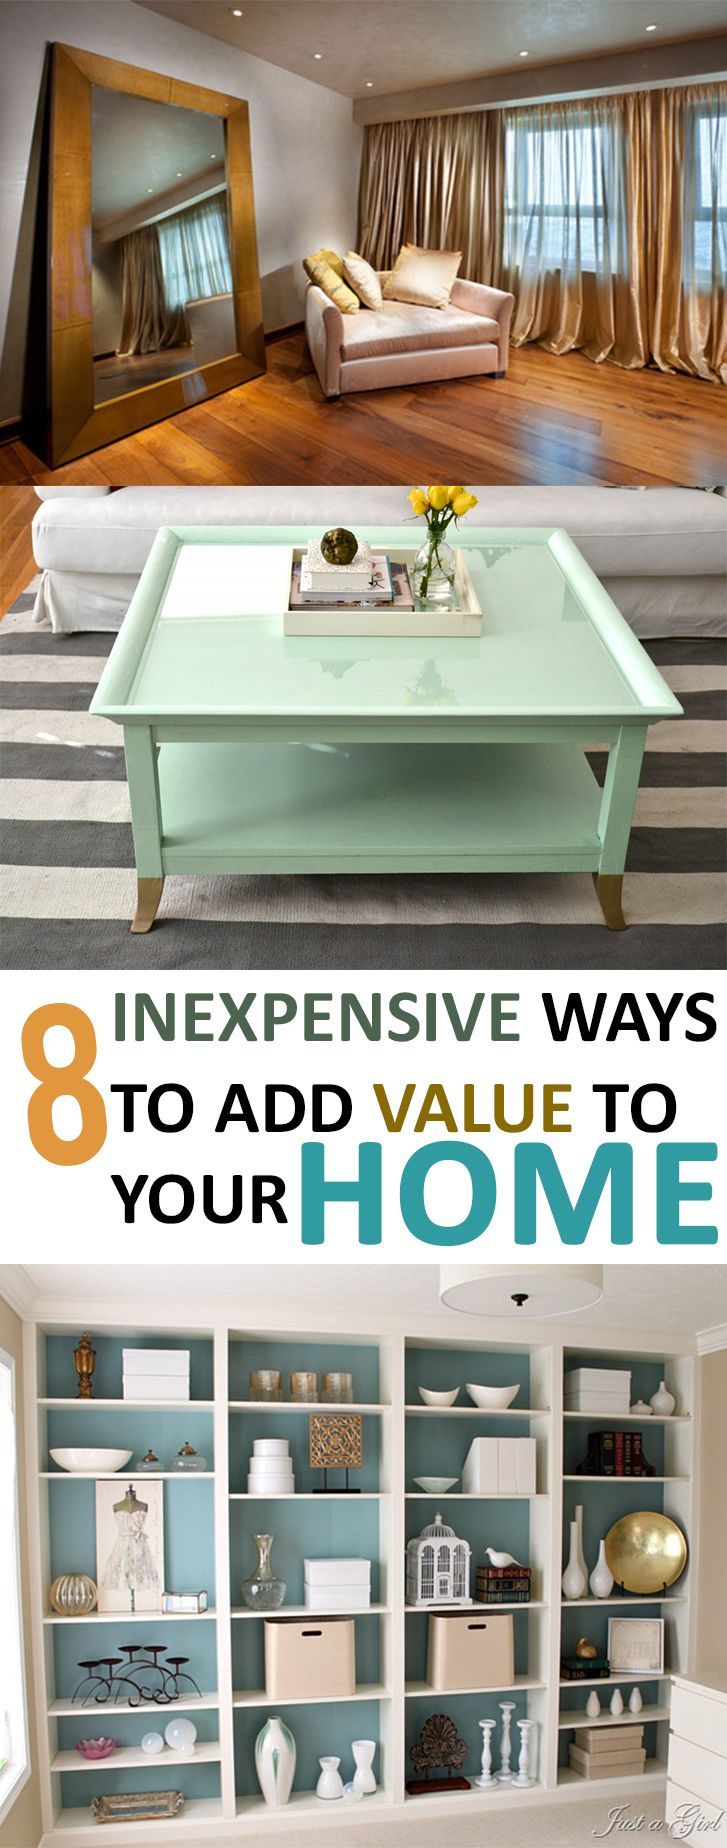 8 inexpensive ways to add value to your home - How To Add Value To Your Home